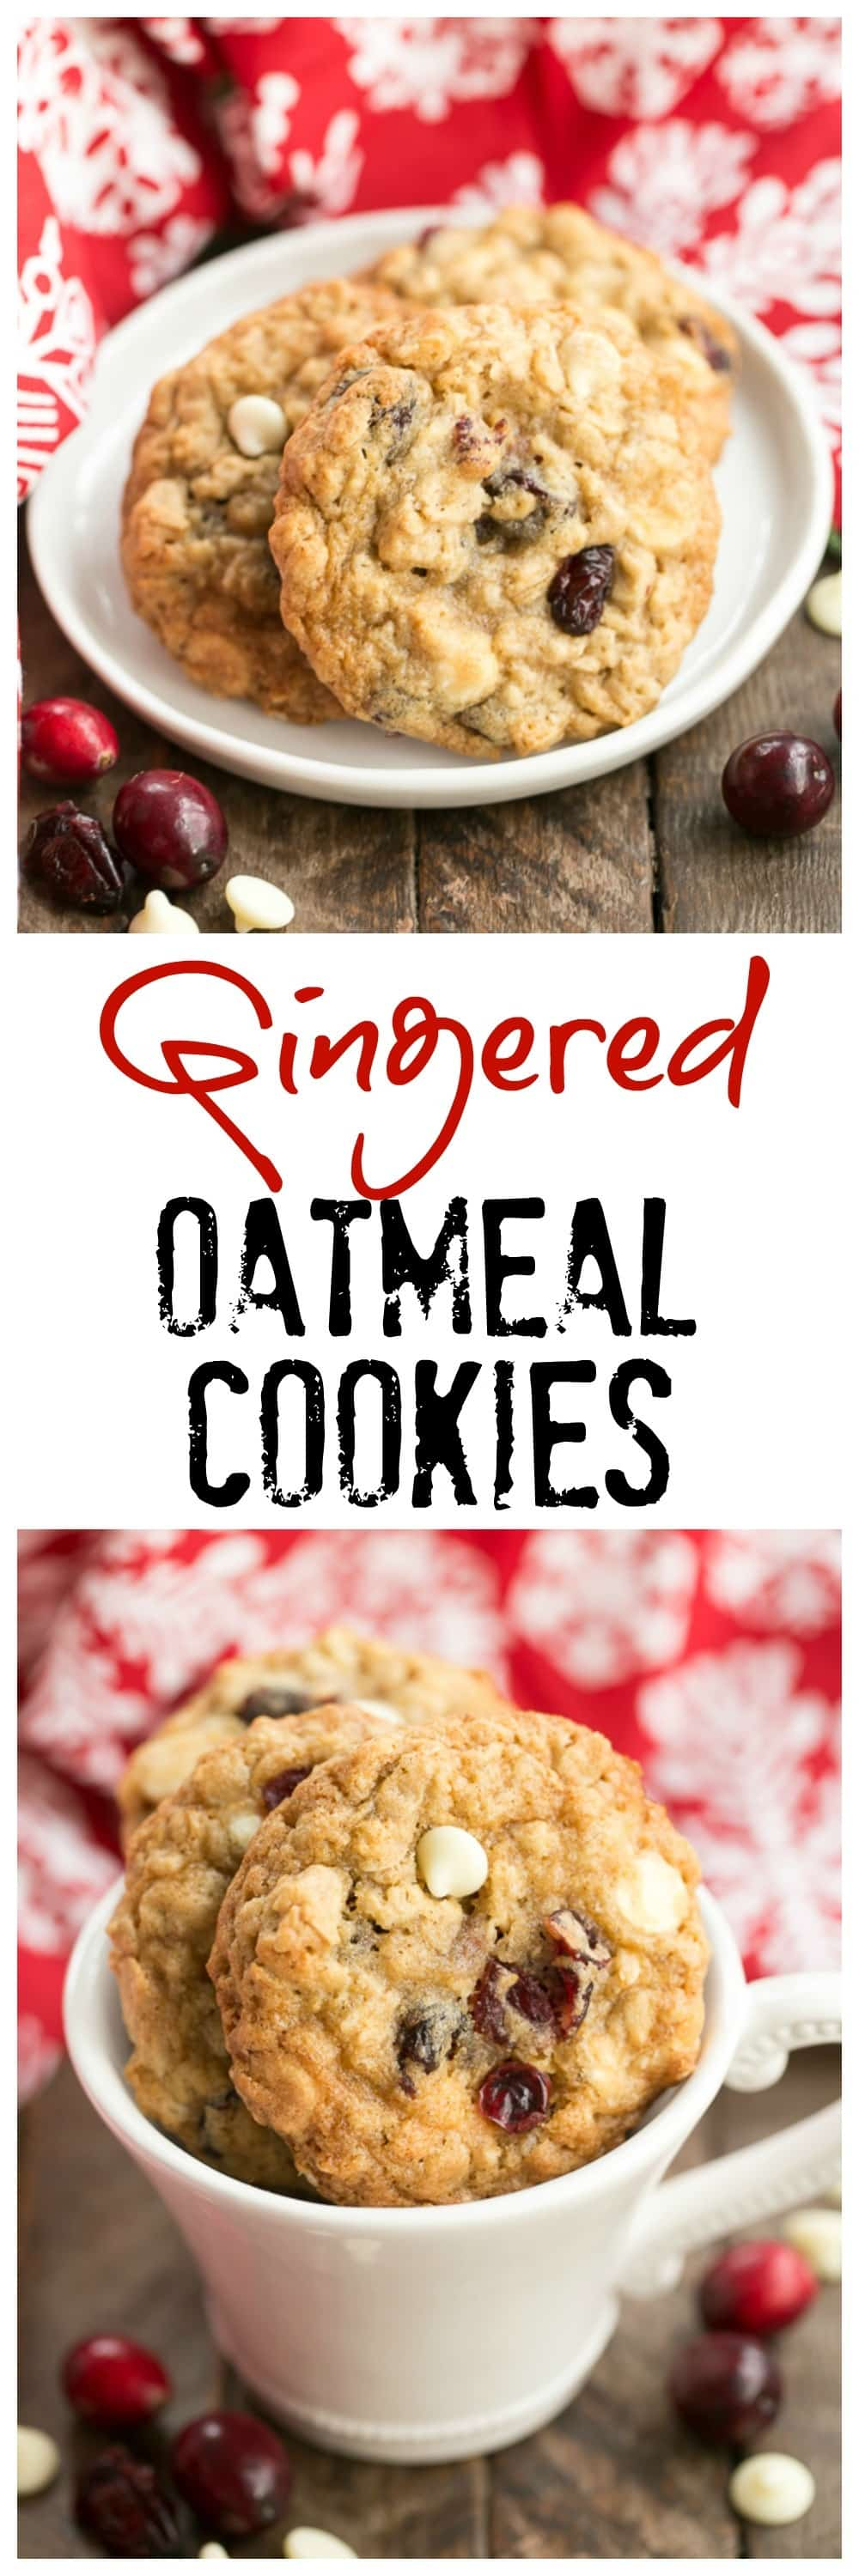 Gingered Cranberry Oatmeal Cookies | Loaded with spices, dried cranberries, white chocolate and oats!